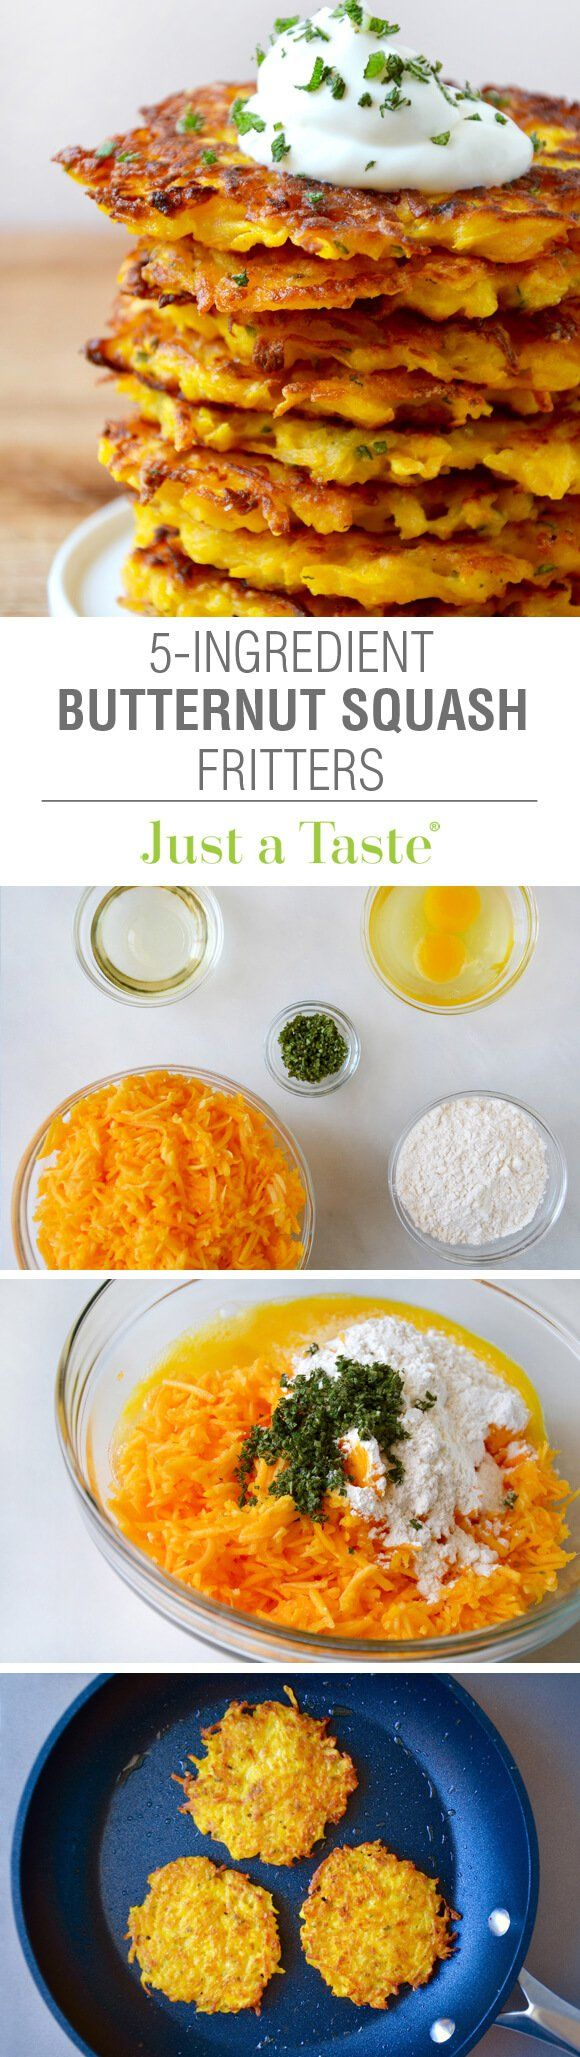 5-Ingredient Butternut Squash Fritters Recipe  Substitute coconut flour or almond flour and coconut oil for a healthier option.